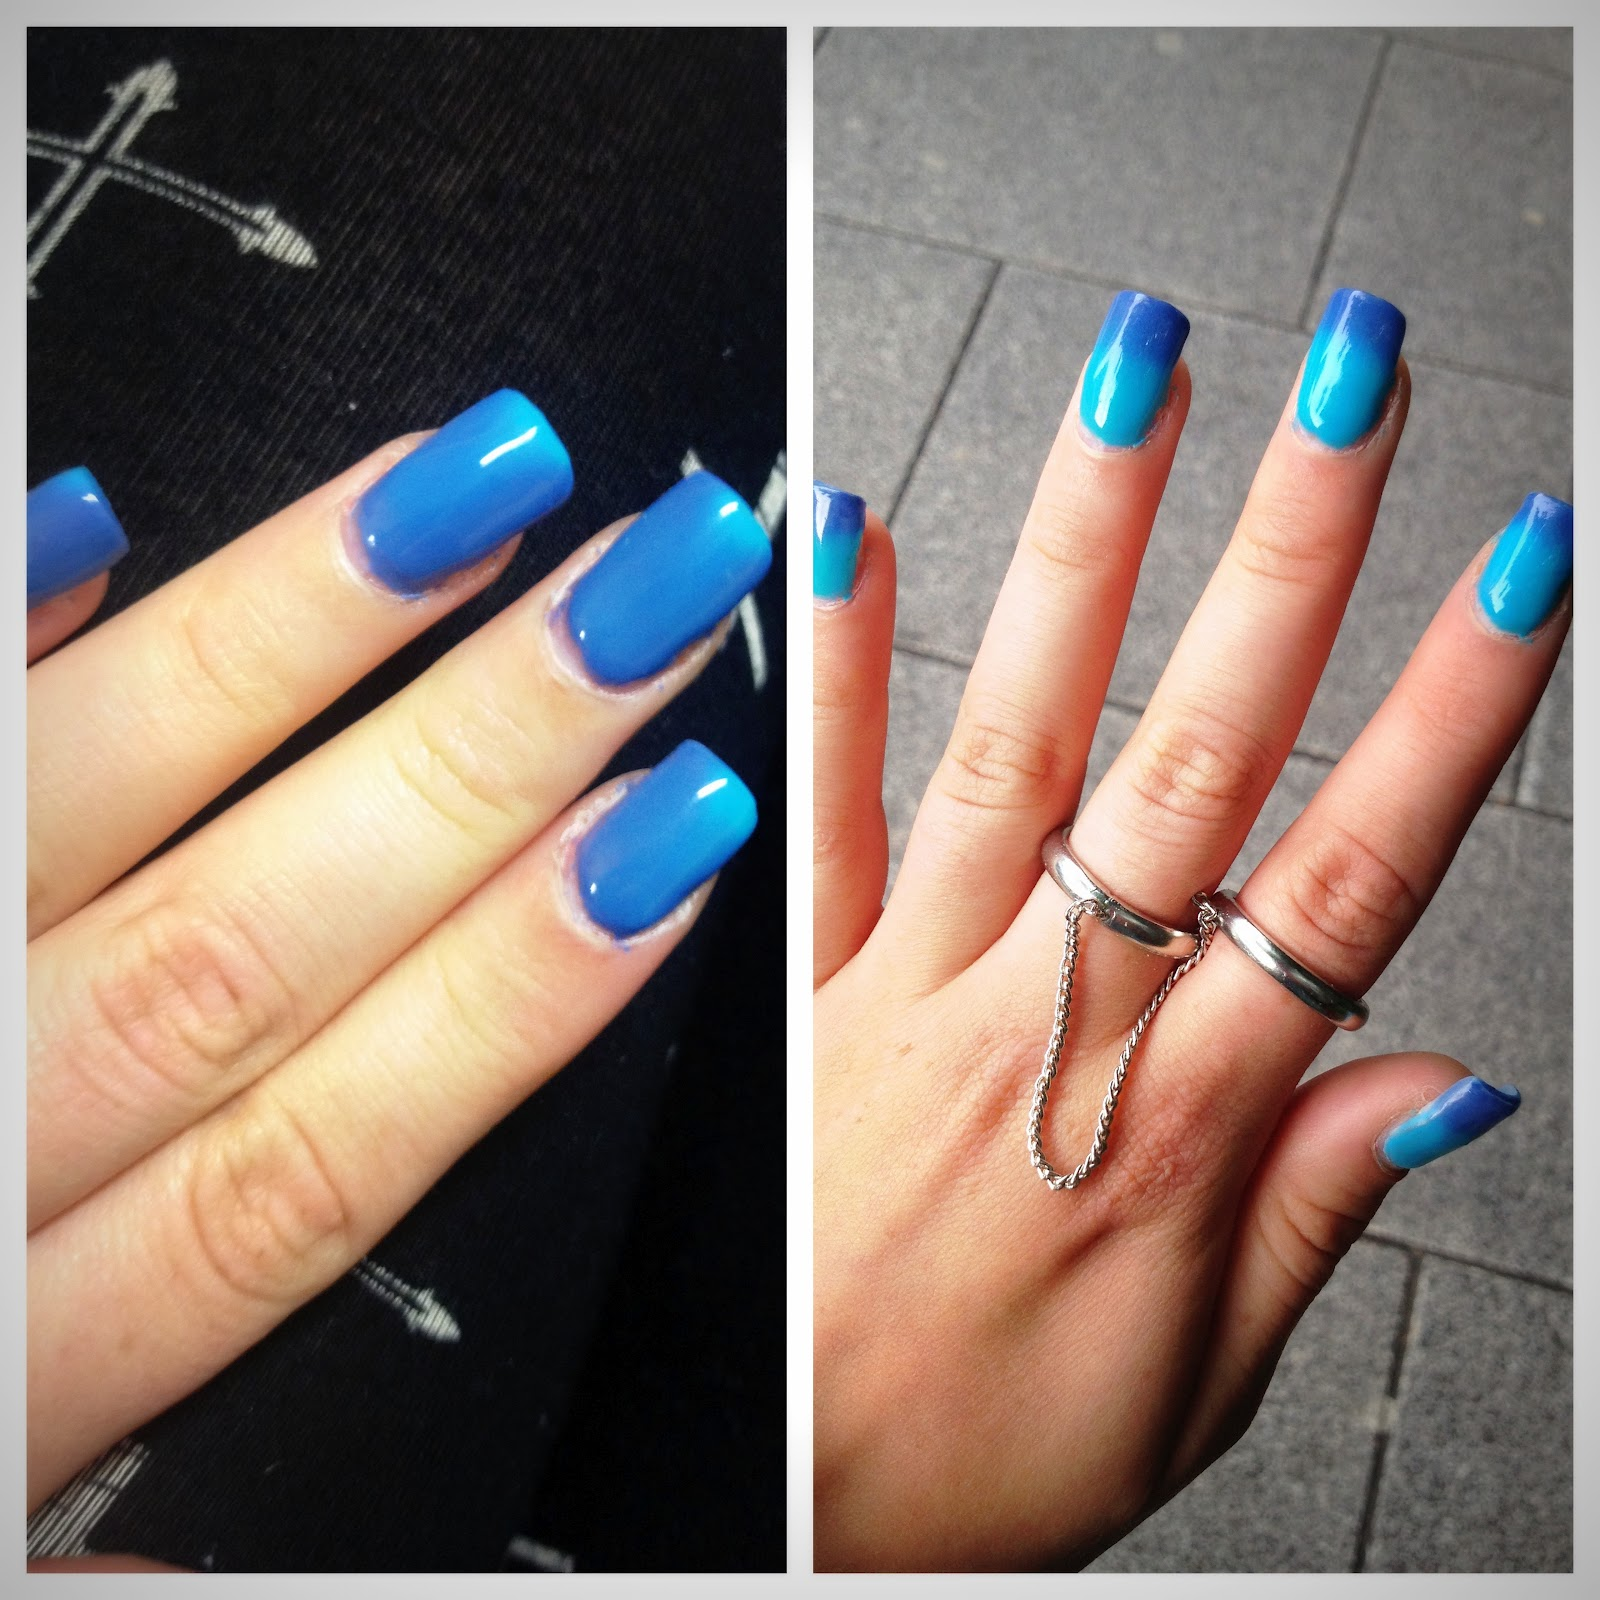 Lipstick Gossip by: Check out my magic nails! They change colour!!!!